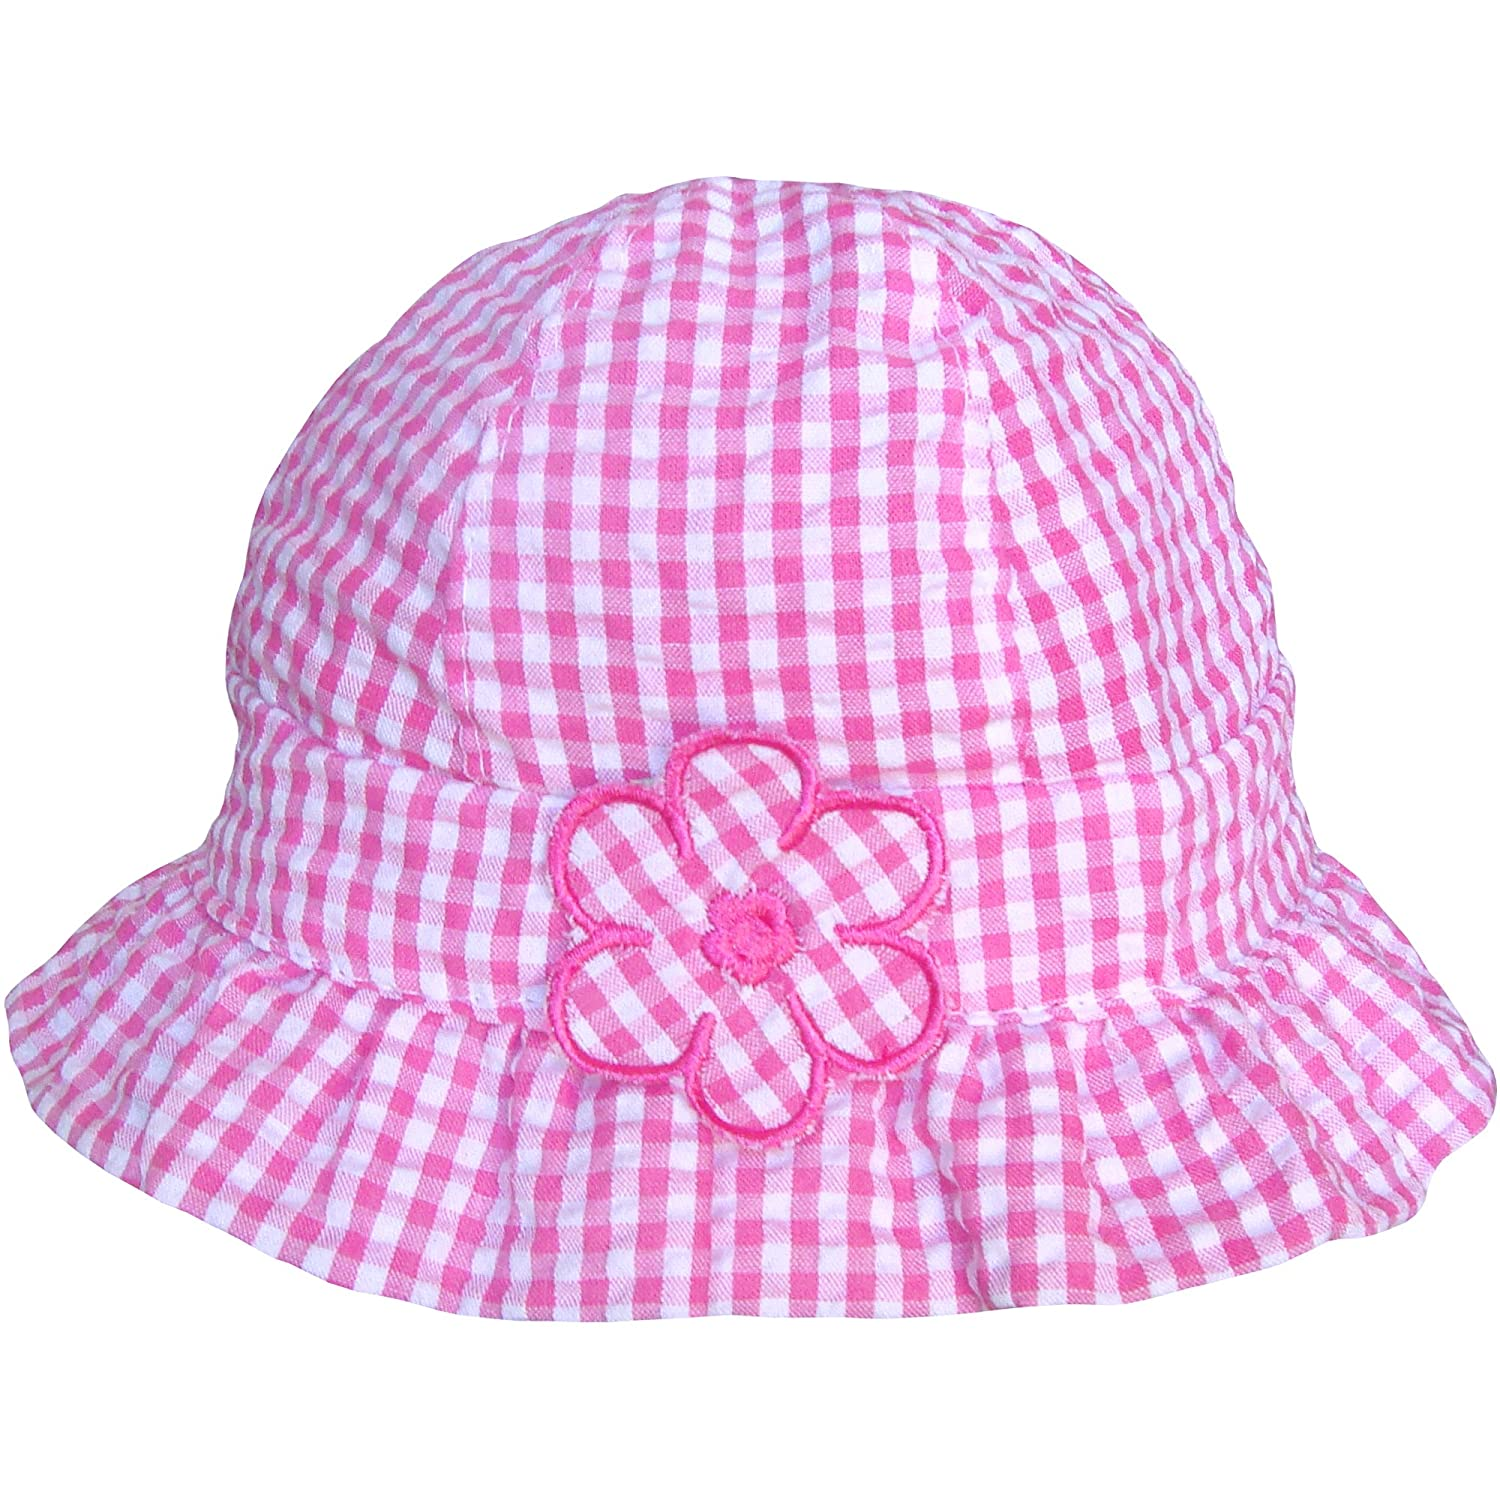 Baby Girls Pink & White Gingham Pattern Daisy Summer Sun Beach Hat